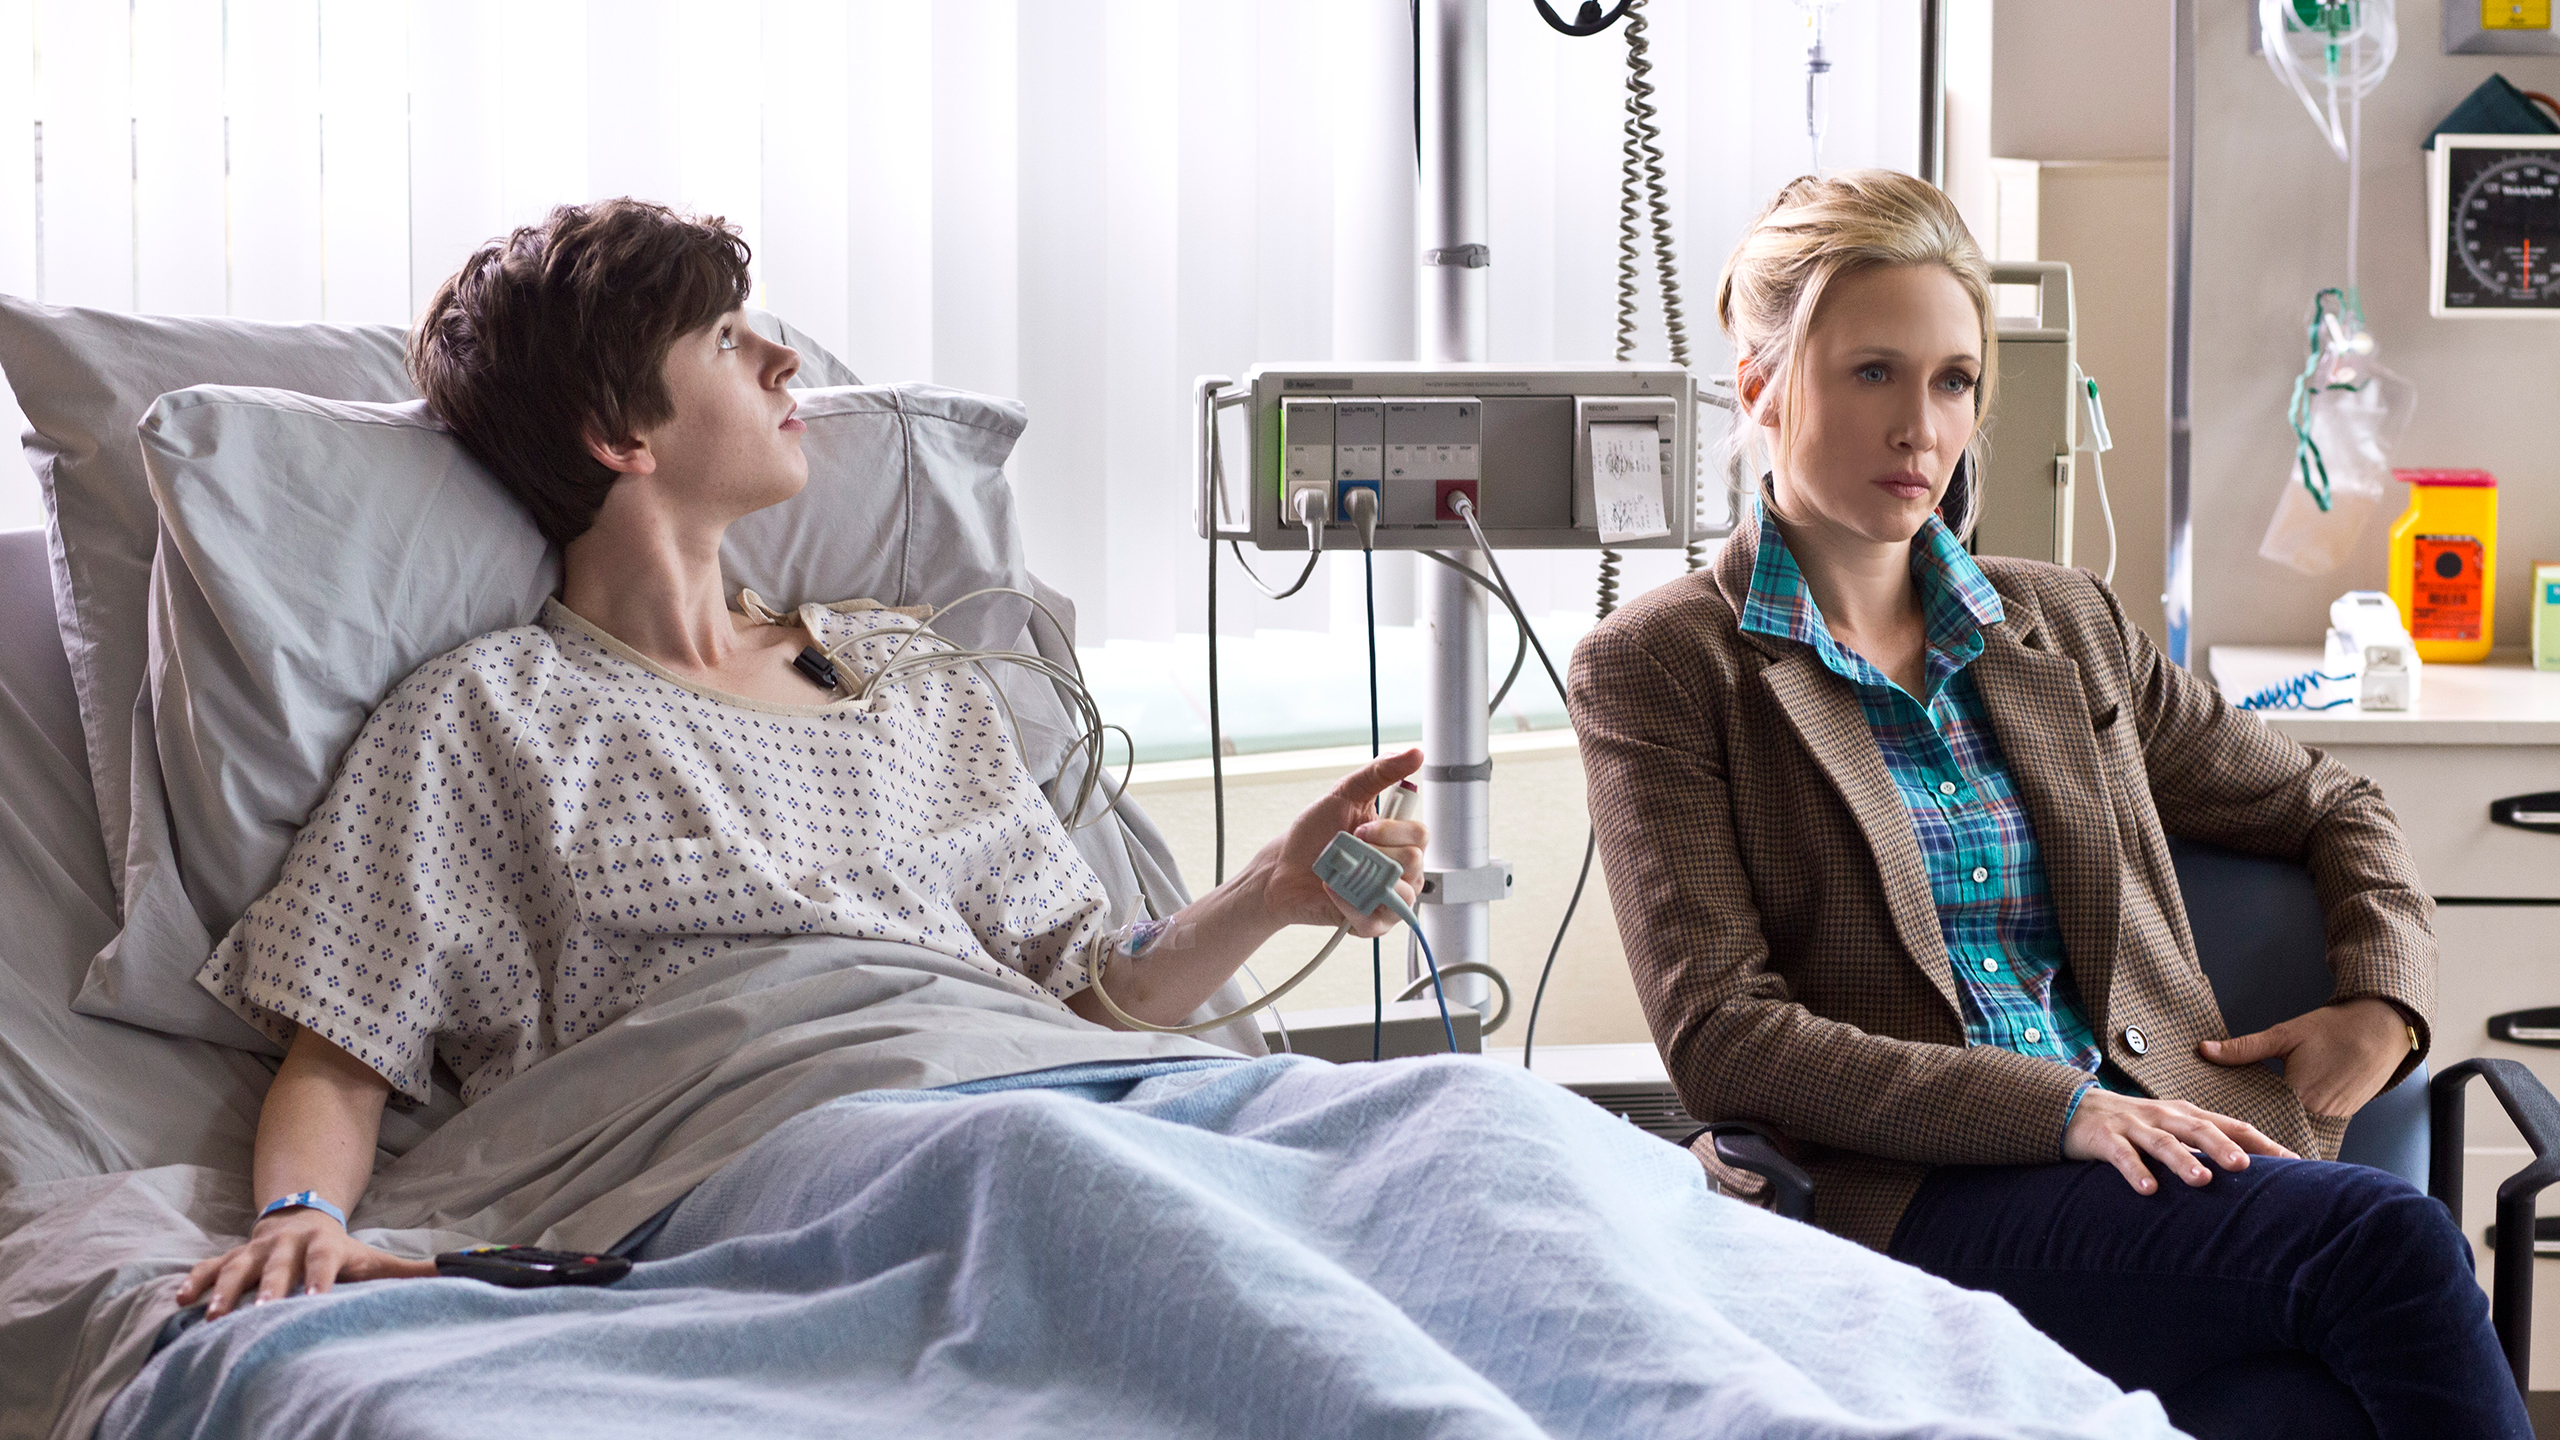 File:06-norman-and-norma-in-the-hospital.jpg